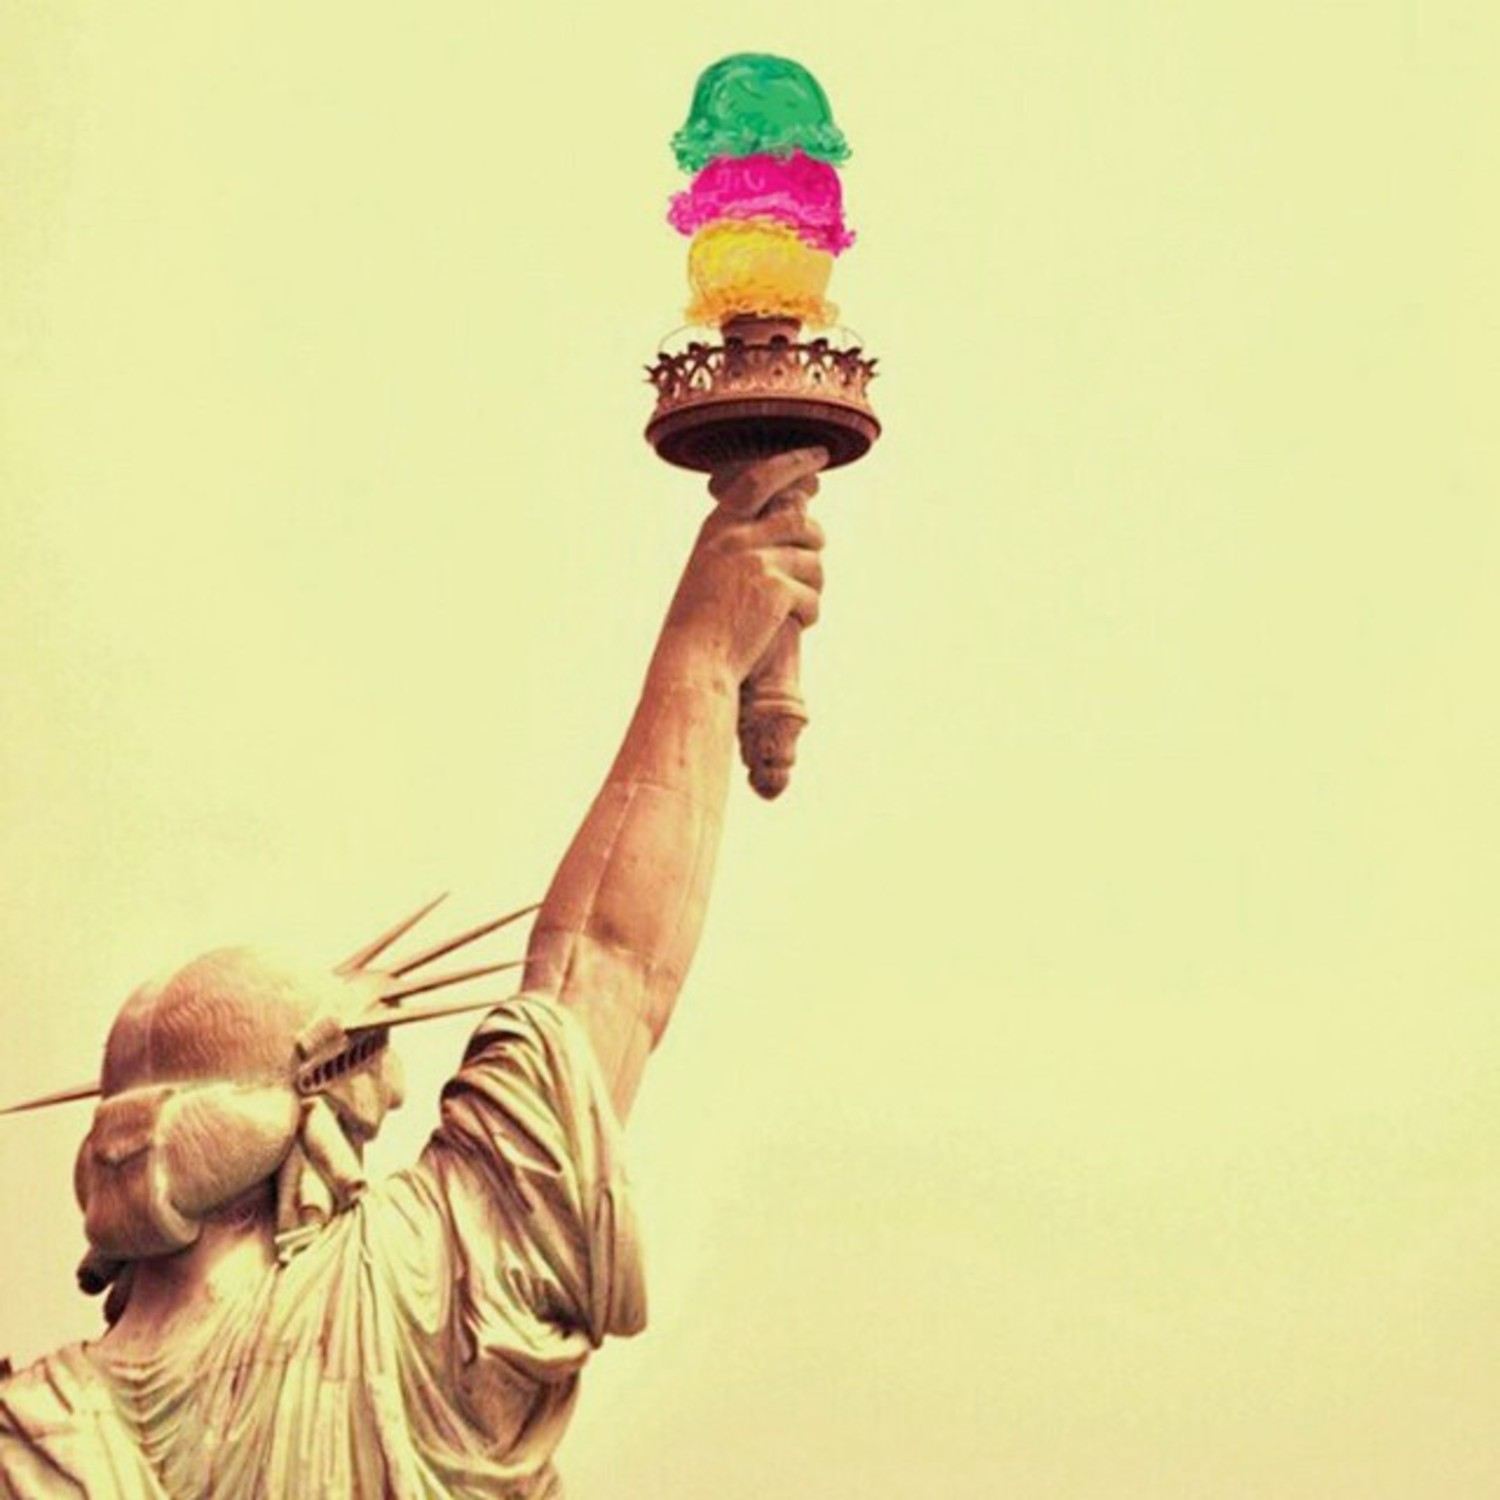 Raise your ice cream up and scream !  #somanyicecreamovertheweekend ➖ #whpicecream  Photo by @upstairz